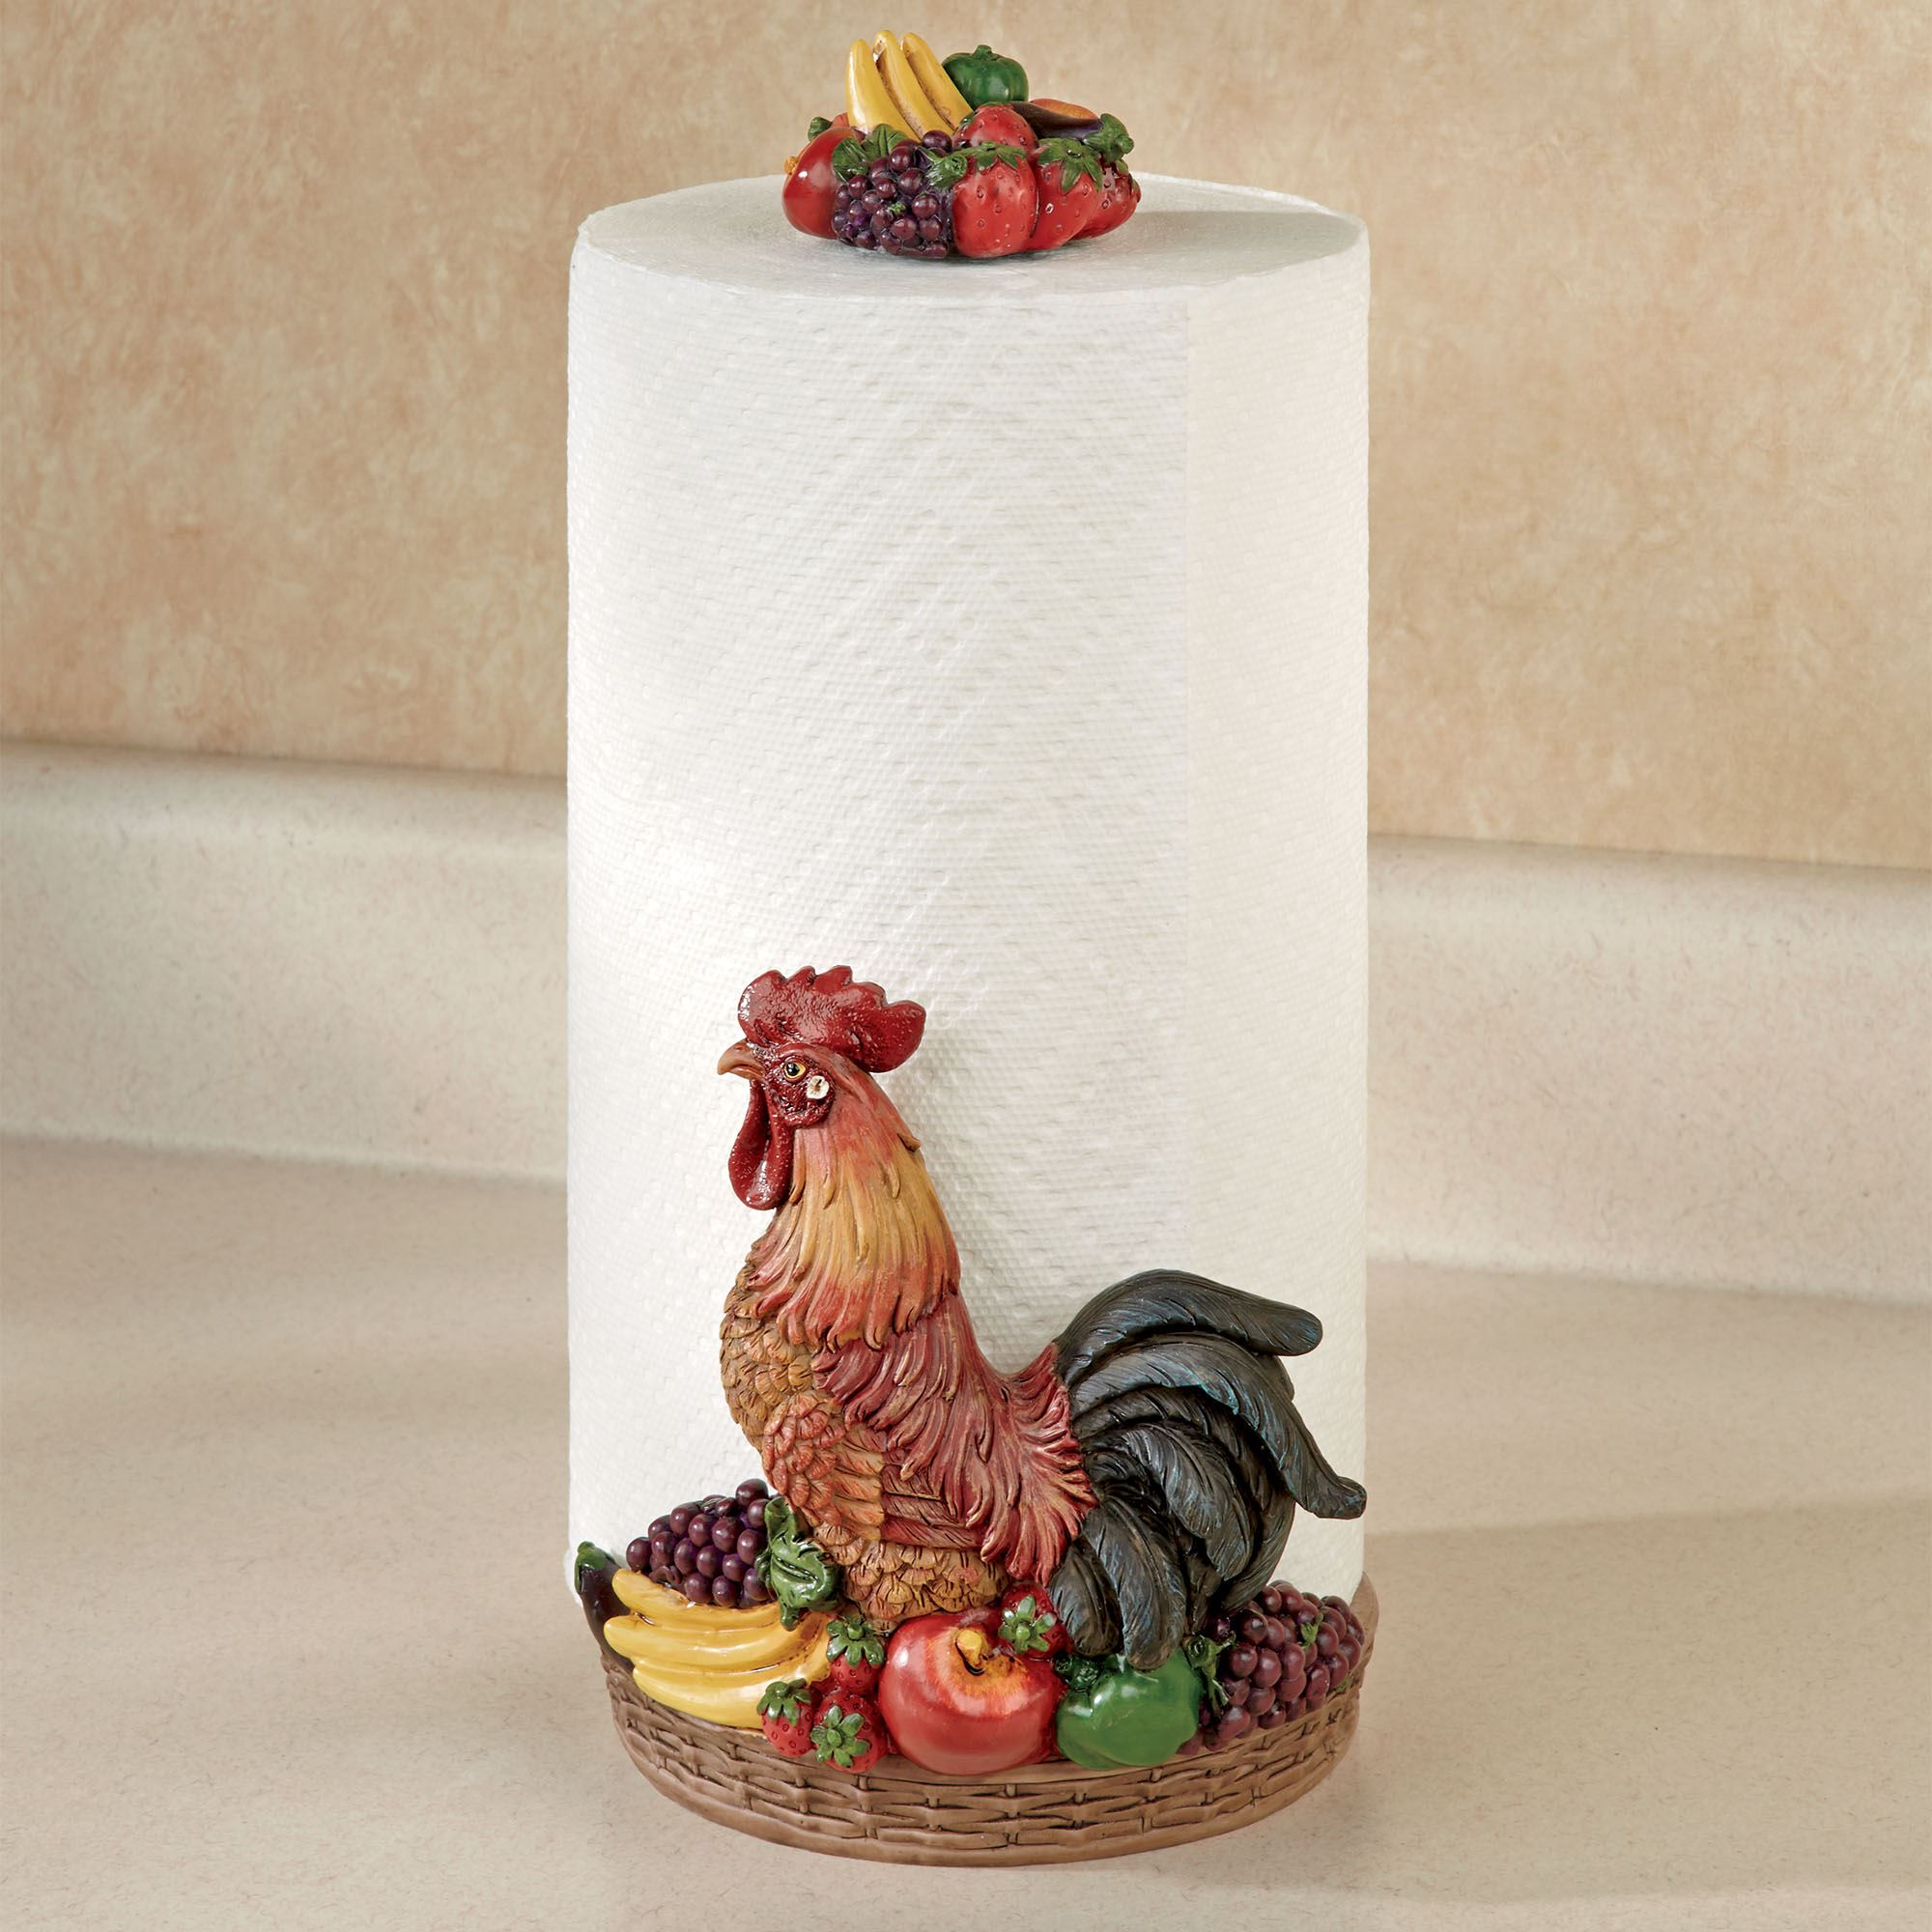 Rooster Medley Paper Towel Holder Multi Earth. Touch To Zoom